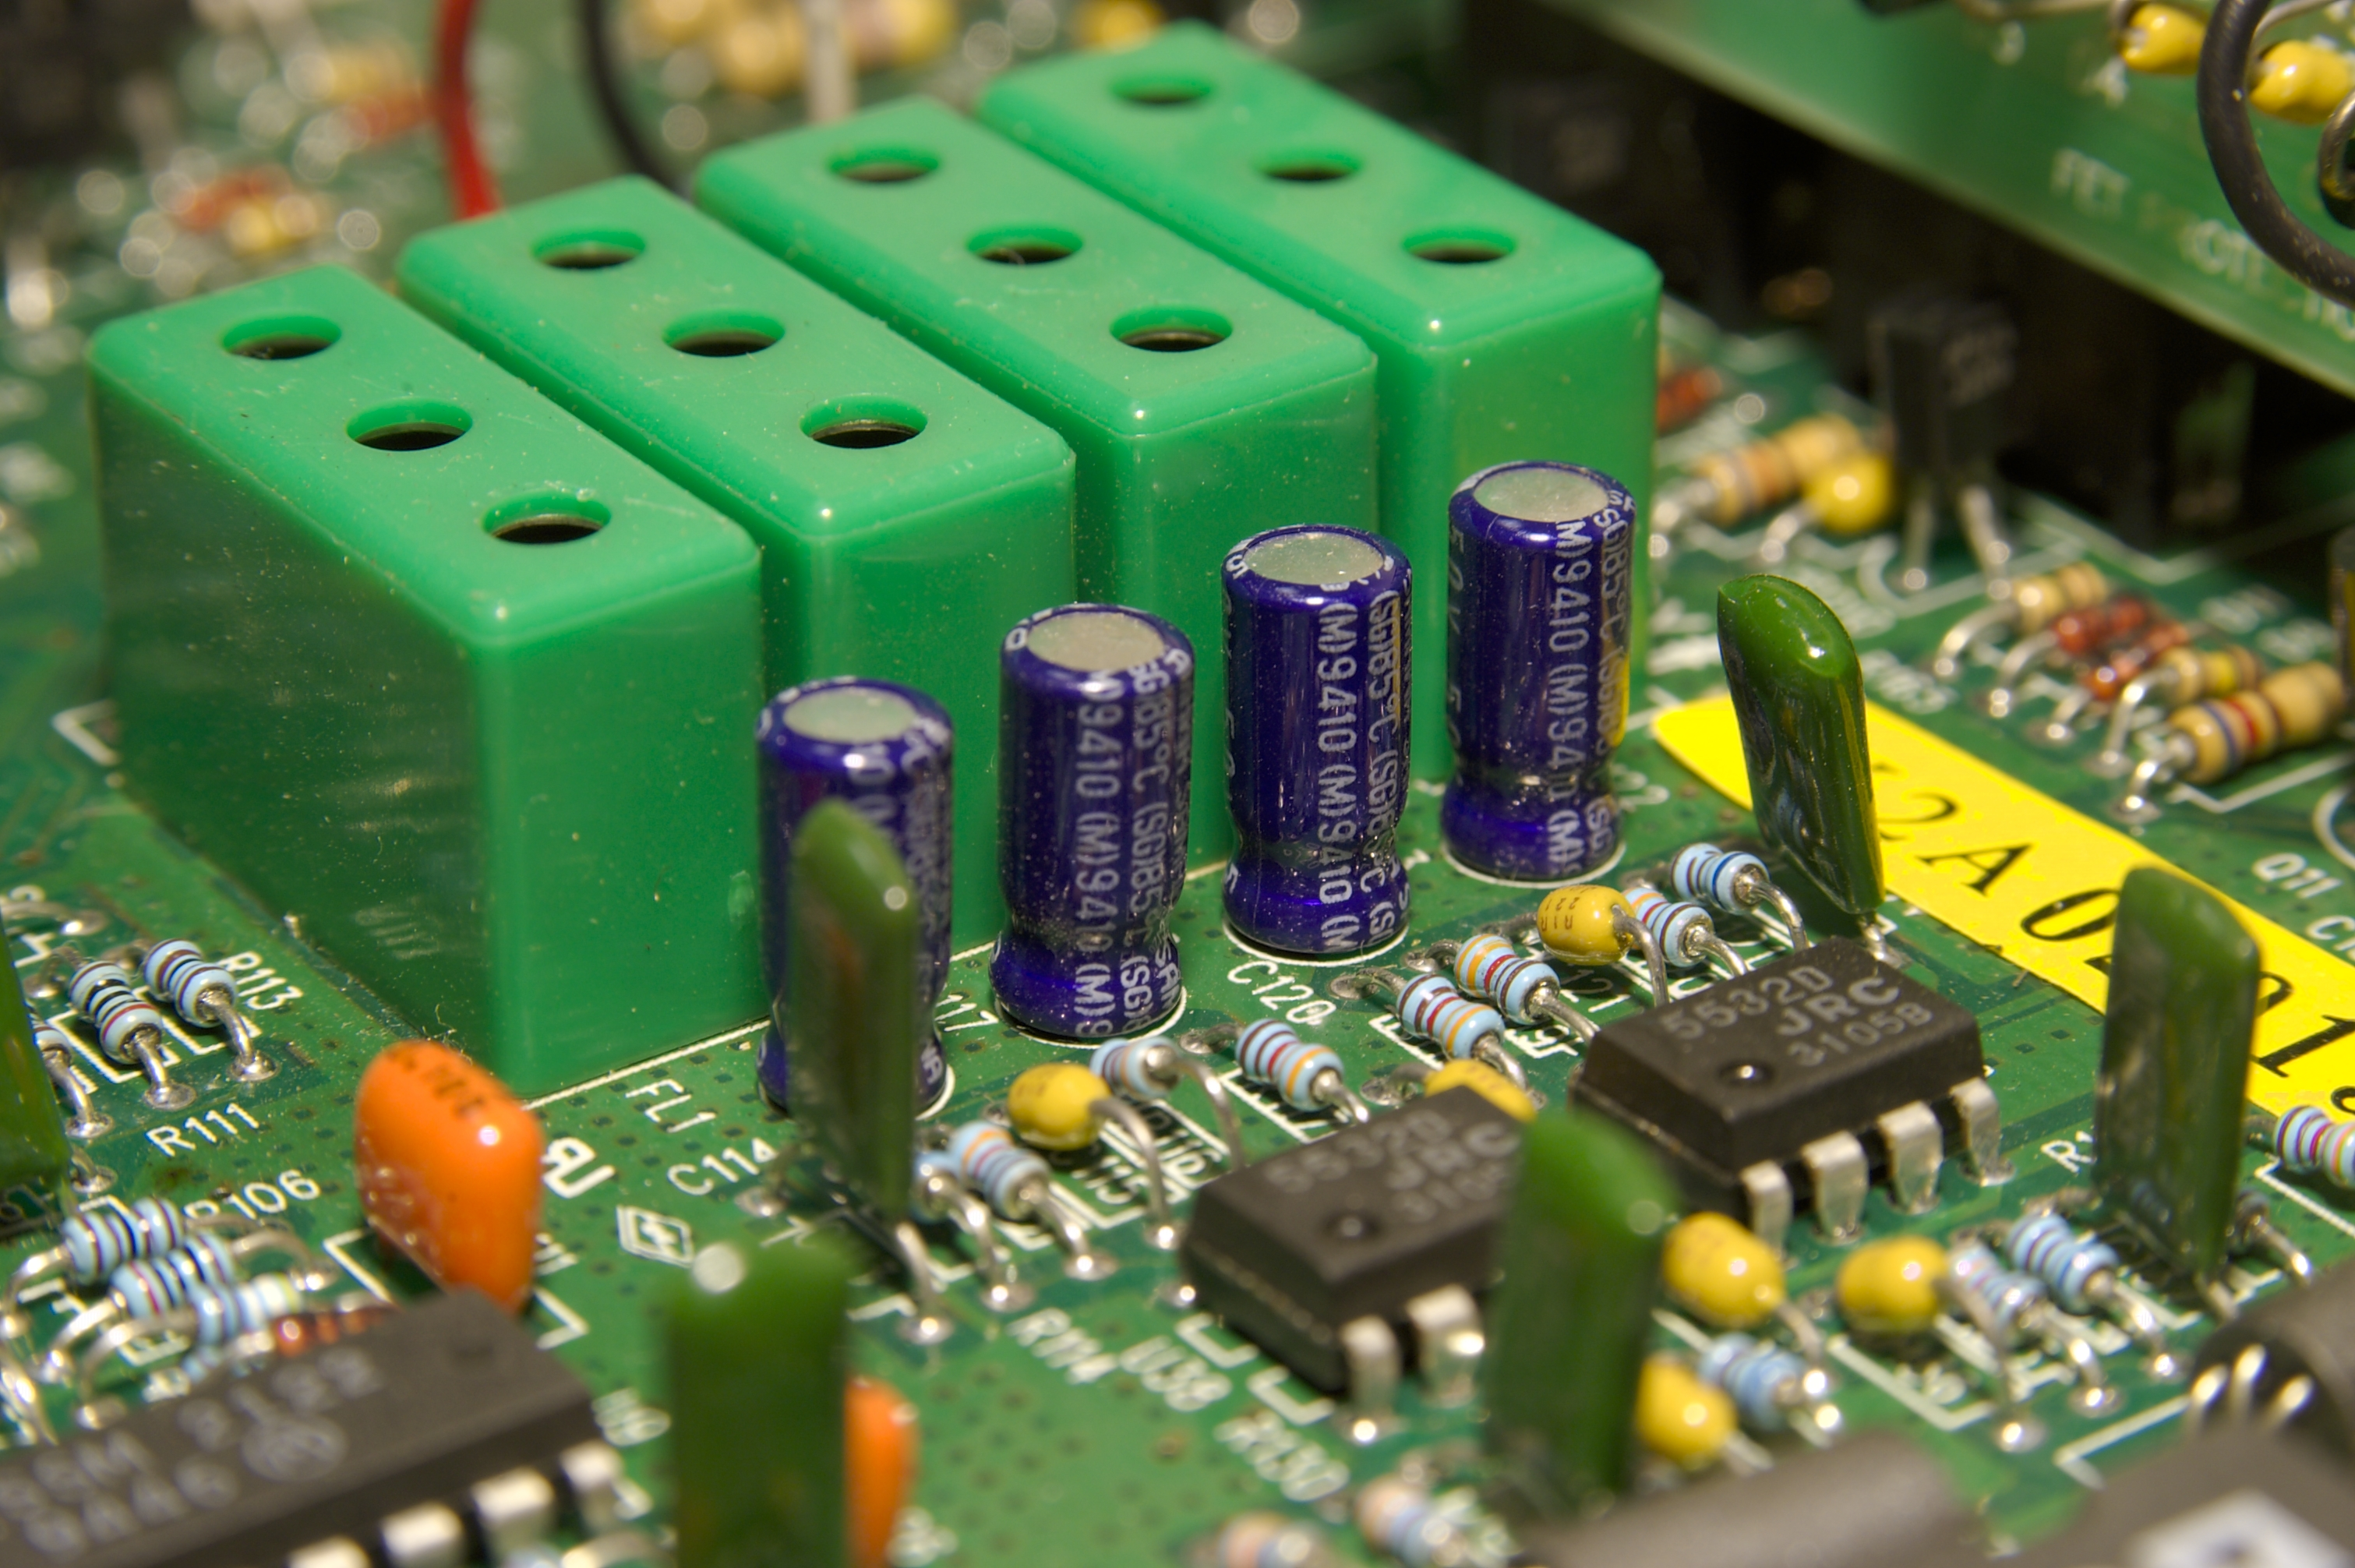 DSC_9927.jpg - another 4 pack of capacitors on the power board